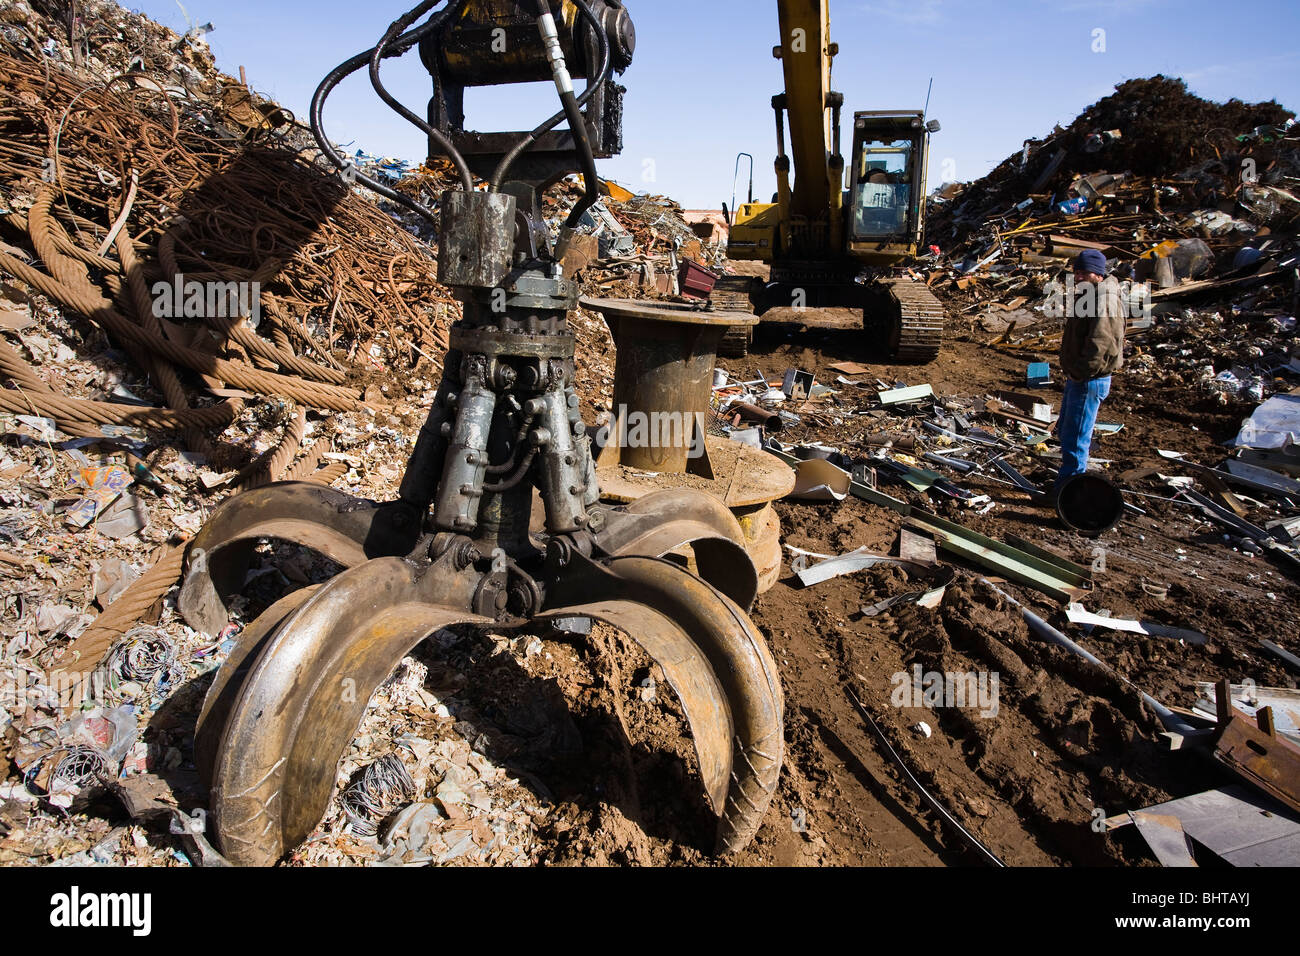 Excavating machine, with large grapple claw, at scrap metal yard. Man in the scene. - Stock Image